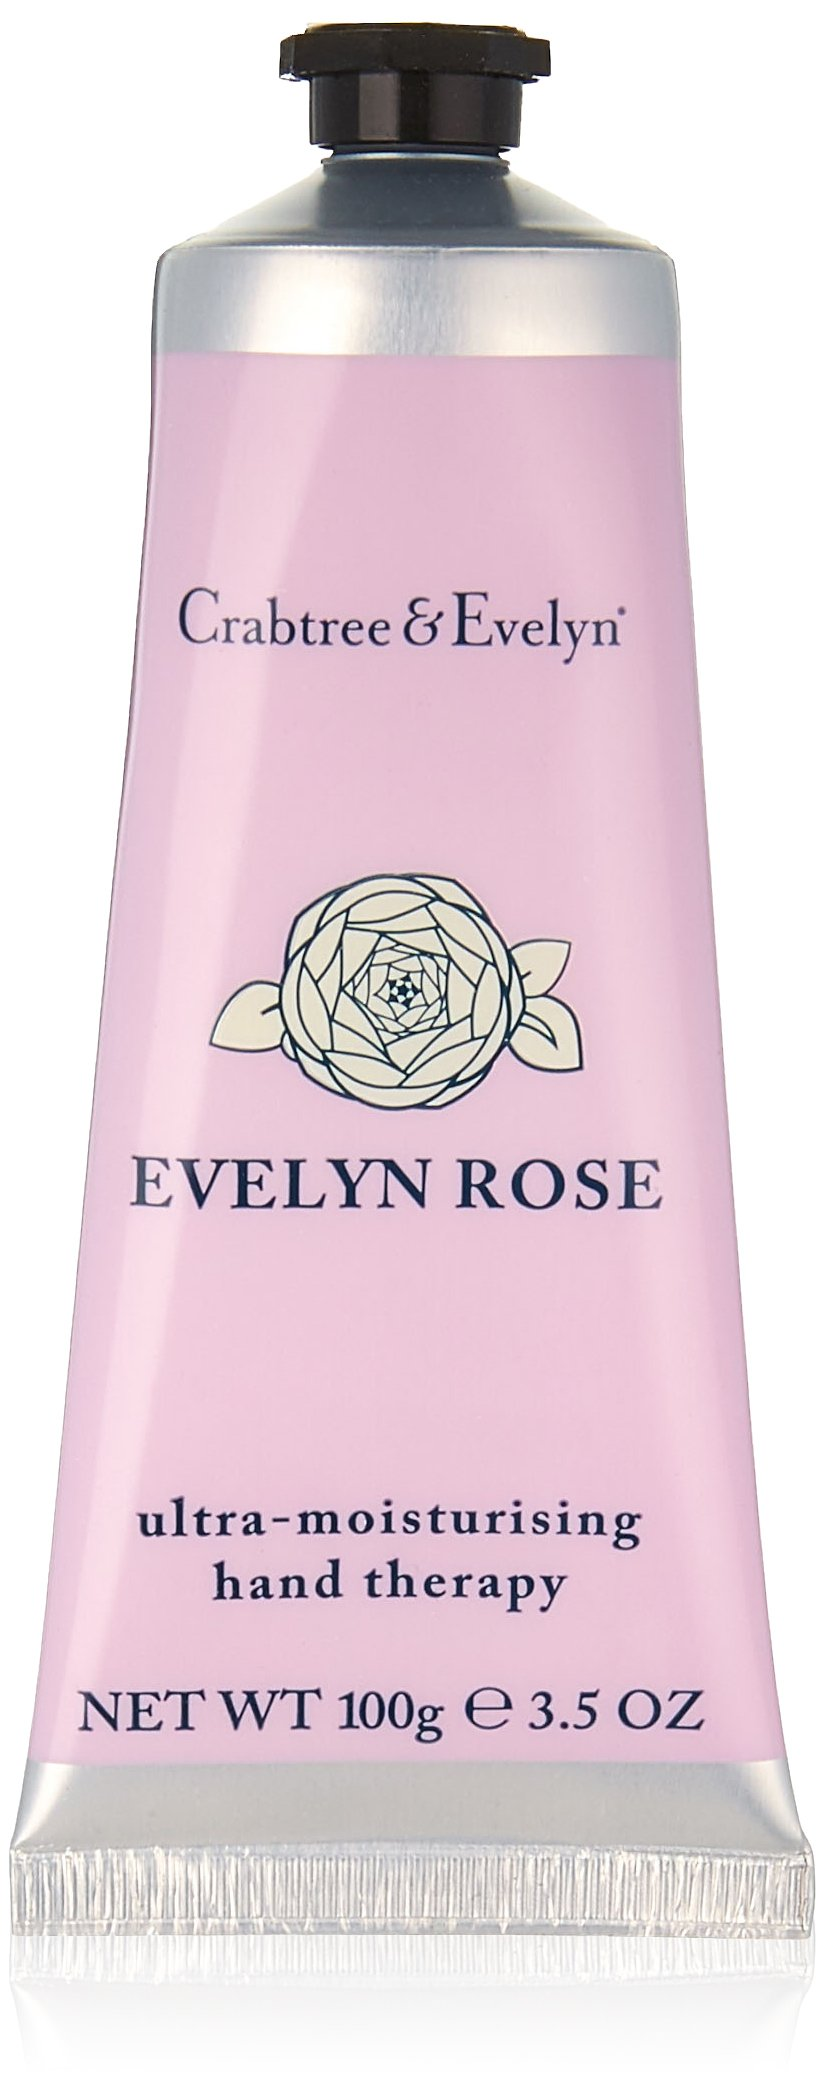 Crabtree & Evelyn Evelyn Rose Ultra-Moisturising Hand Therapy - 100g